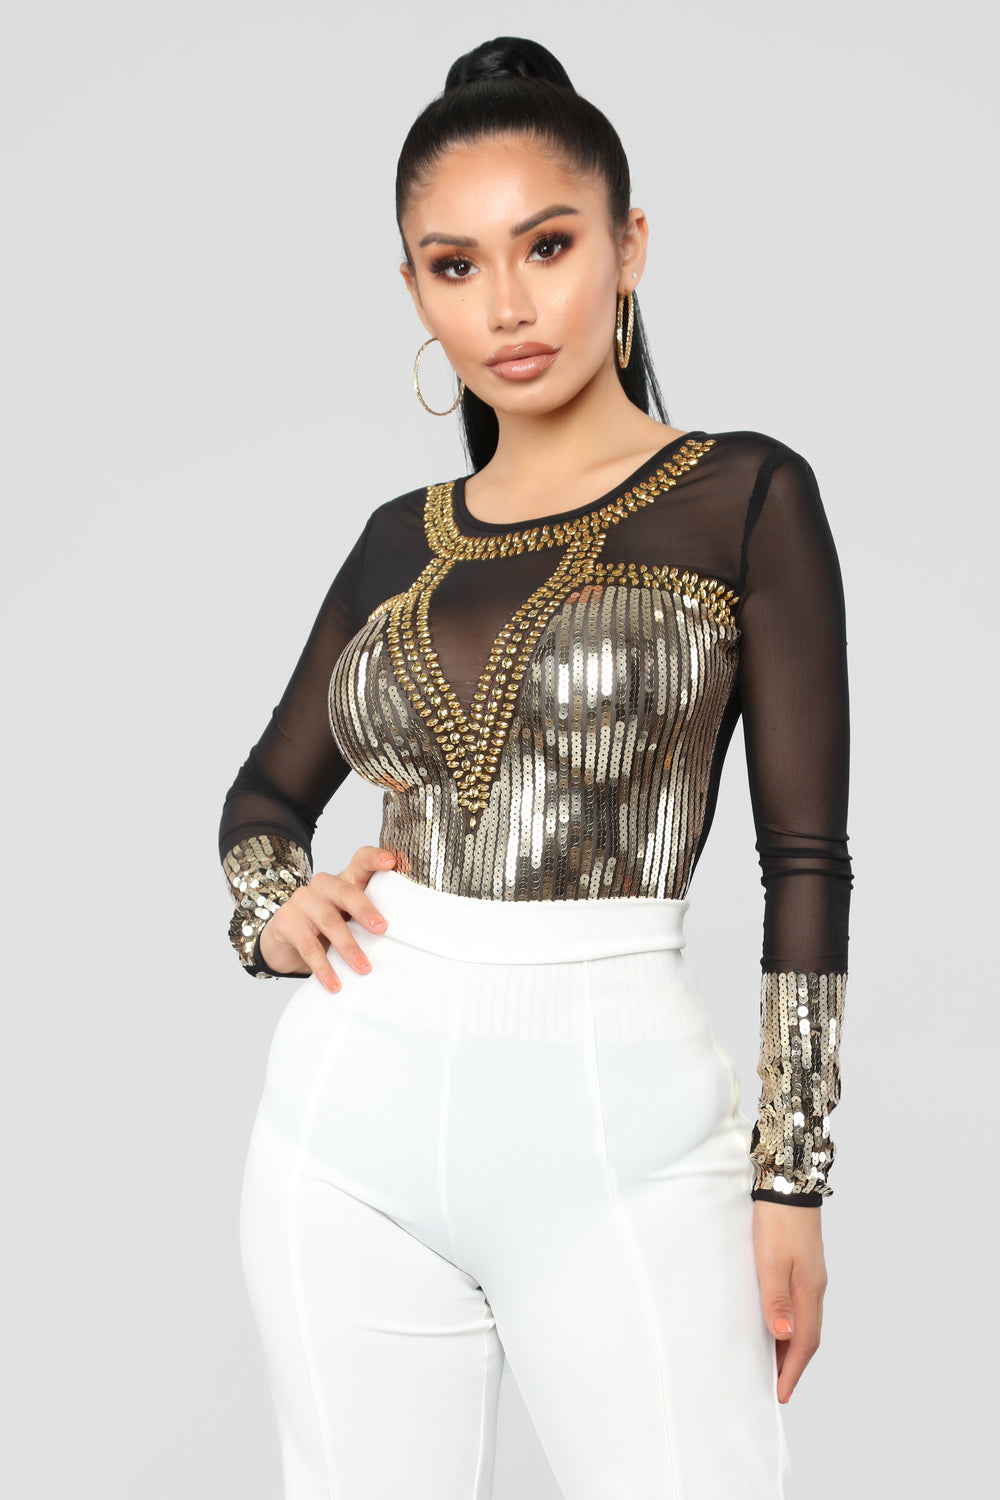 Elizabeth Sequin Bodysuit - Black